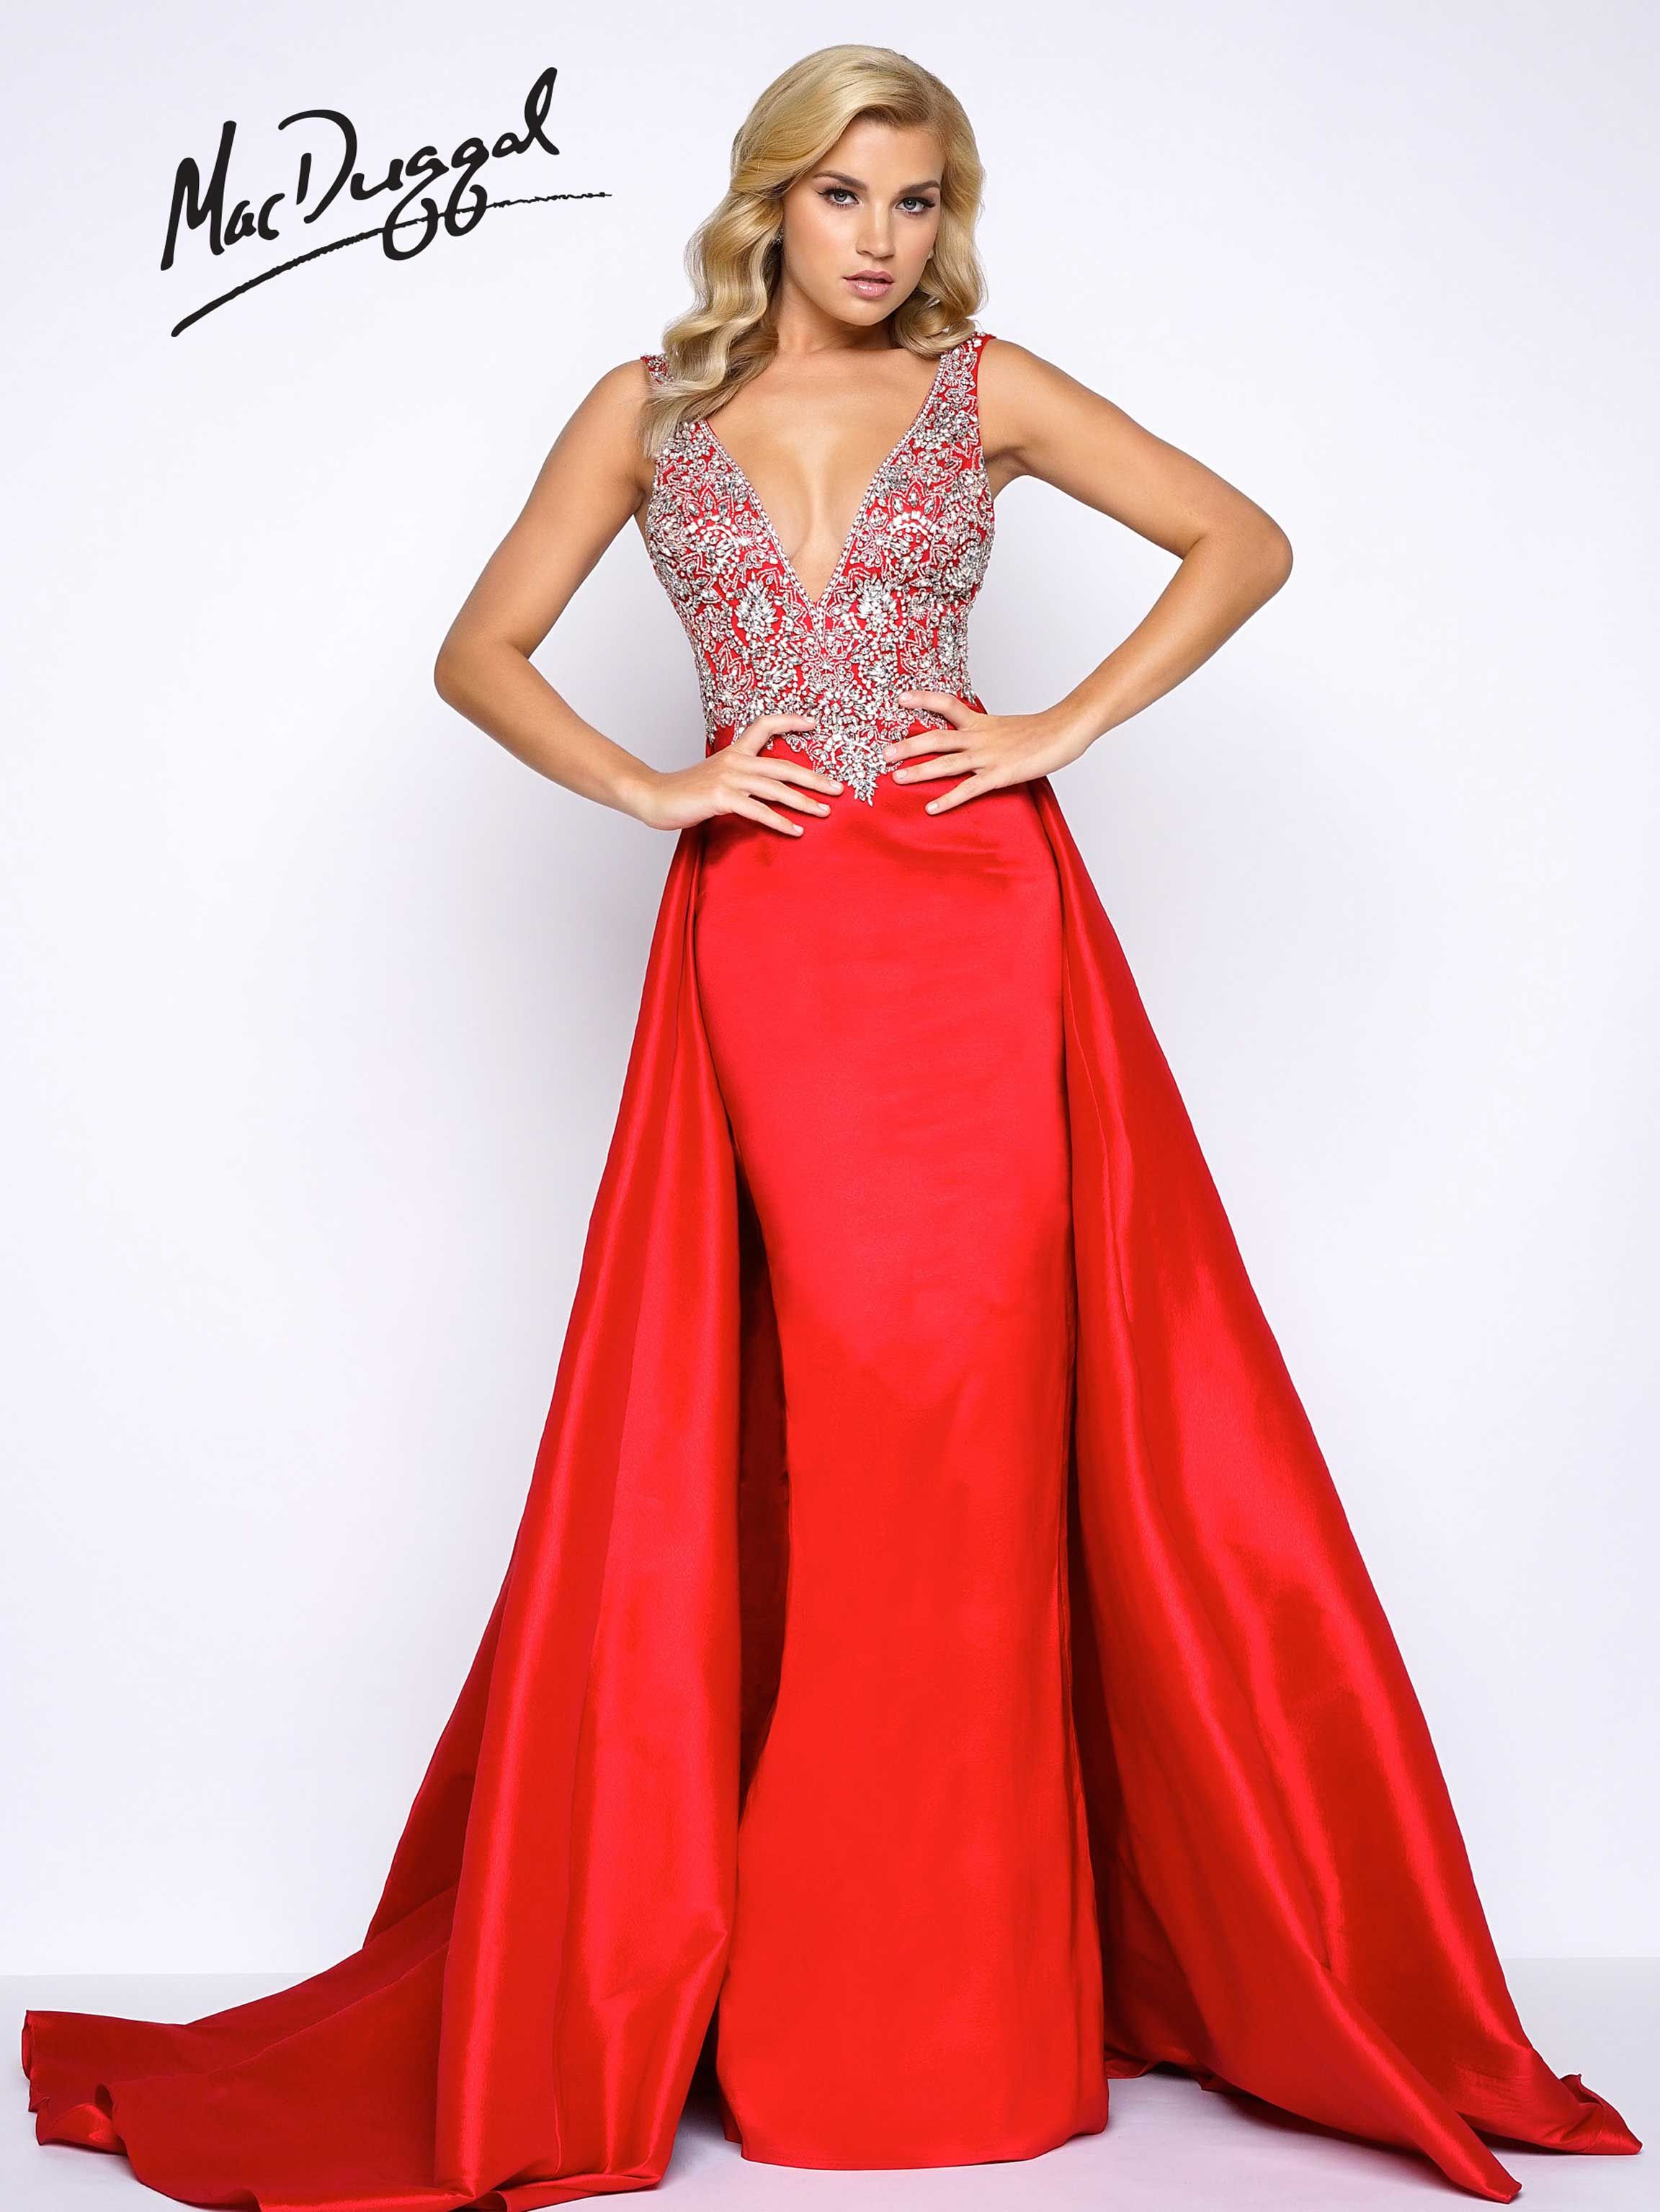 Sleeveless, deep V-neck, jewel encrusted bodice, satin column prom dress  with overskirt and exaggerated train. This red carpet ready prom dress is  available ...